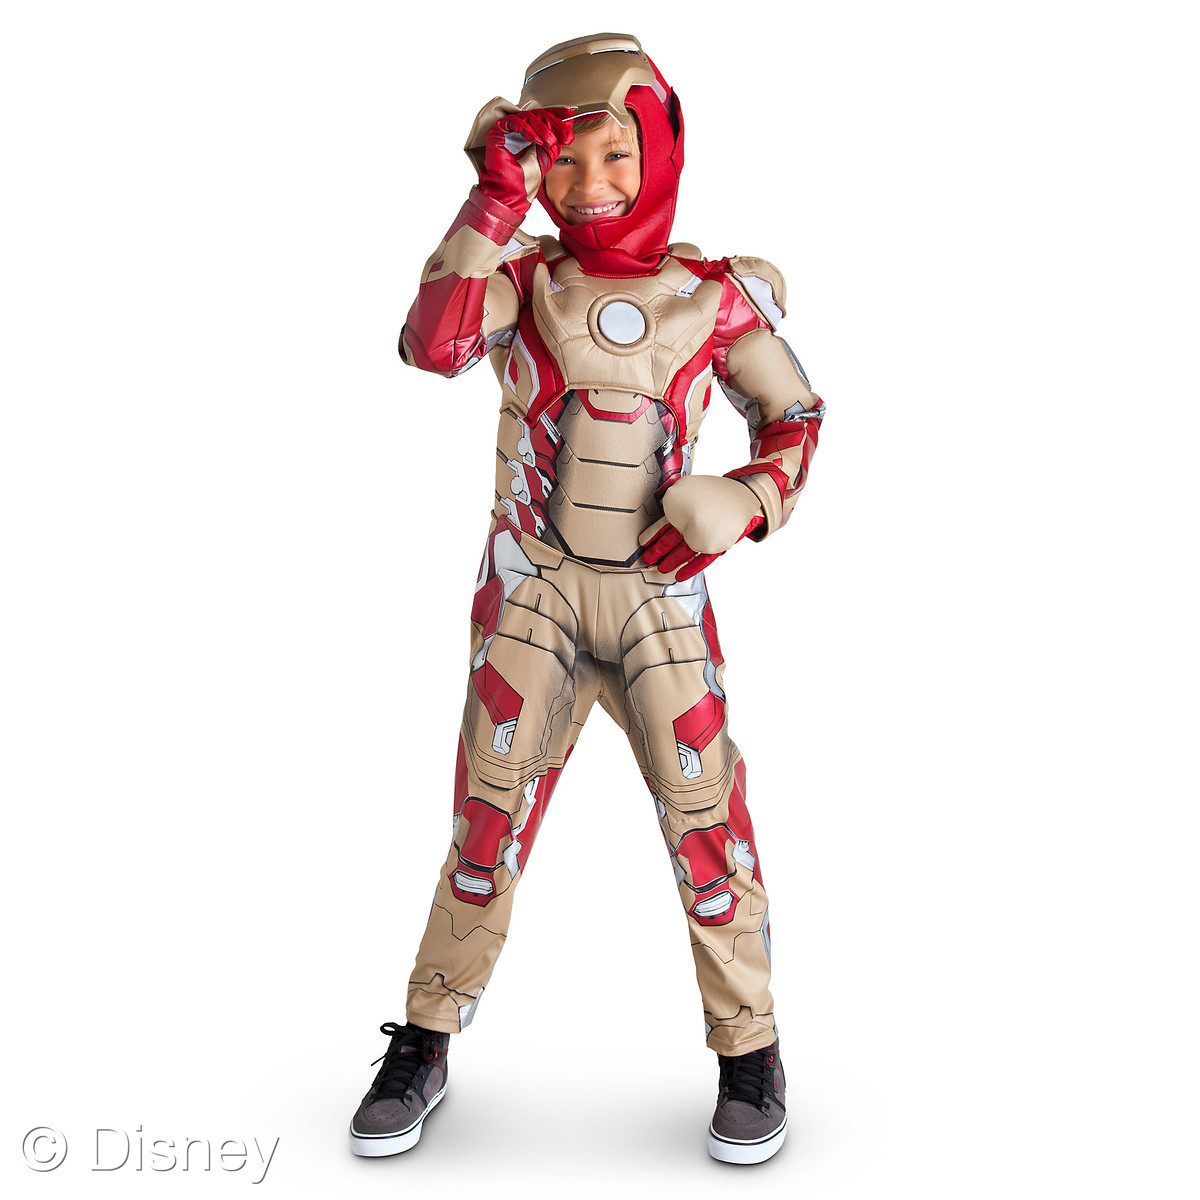 Iron Man Suit Collection Iron Man 3 Swim Collection For